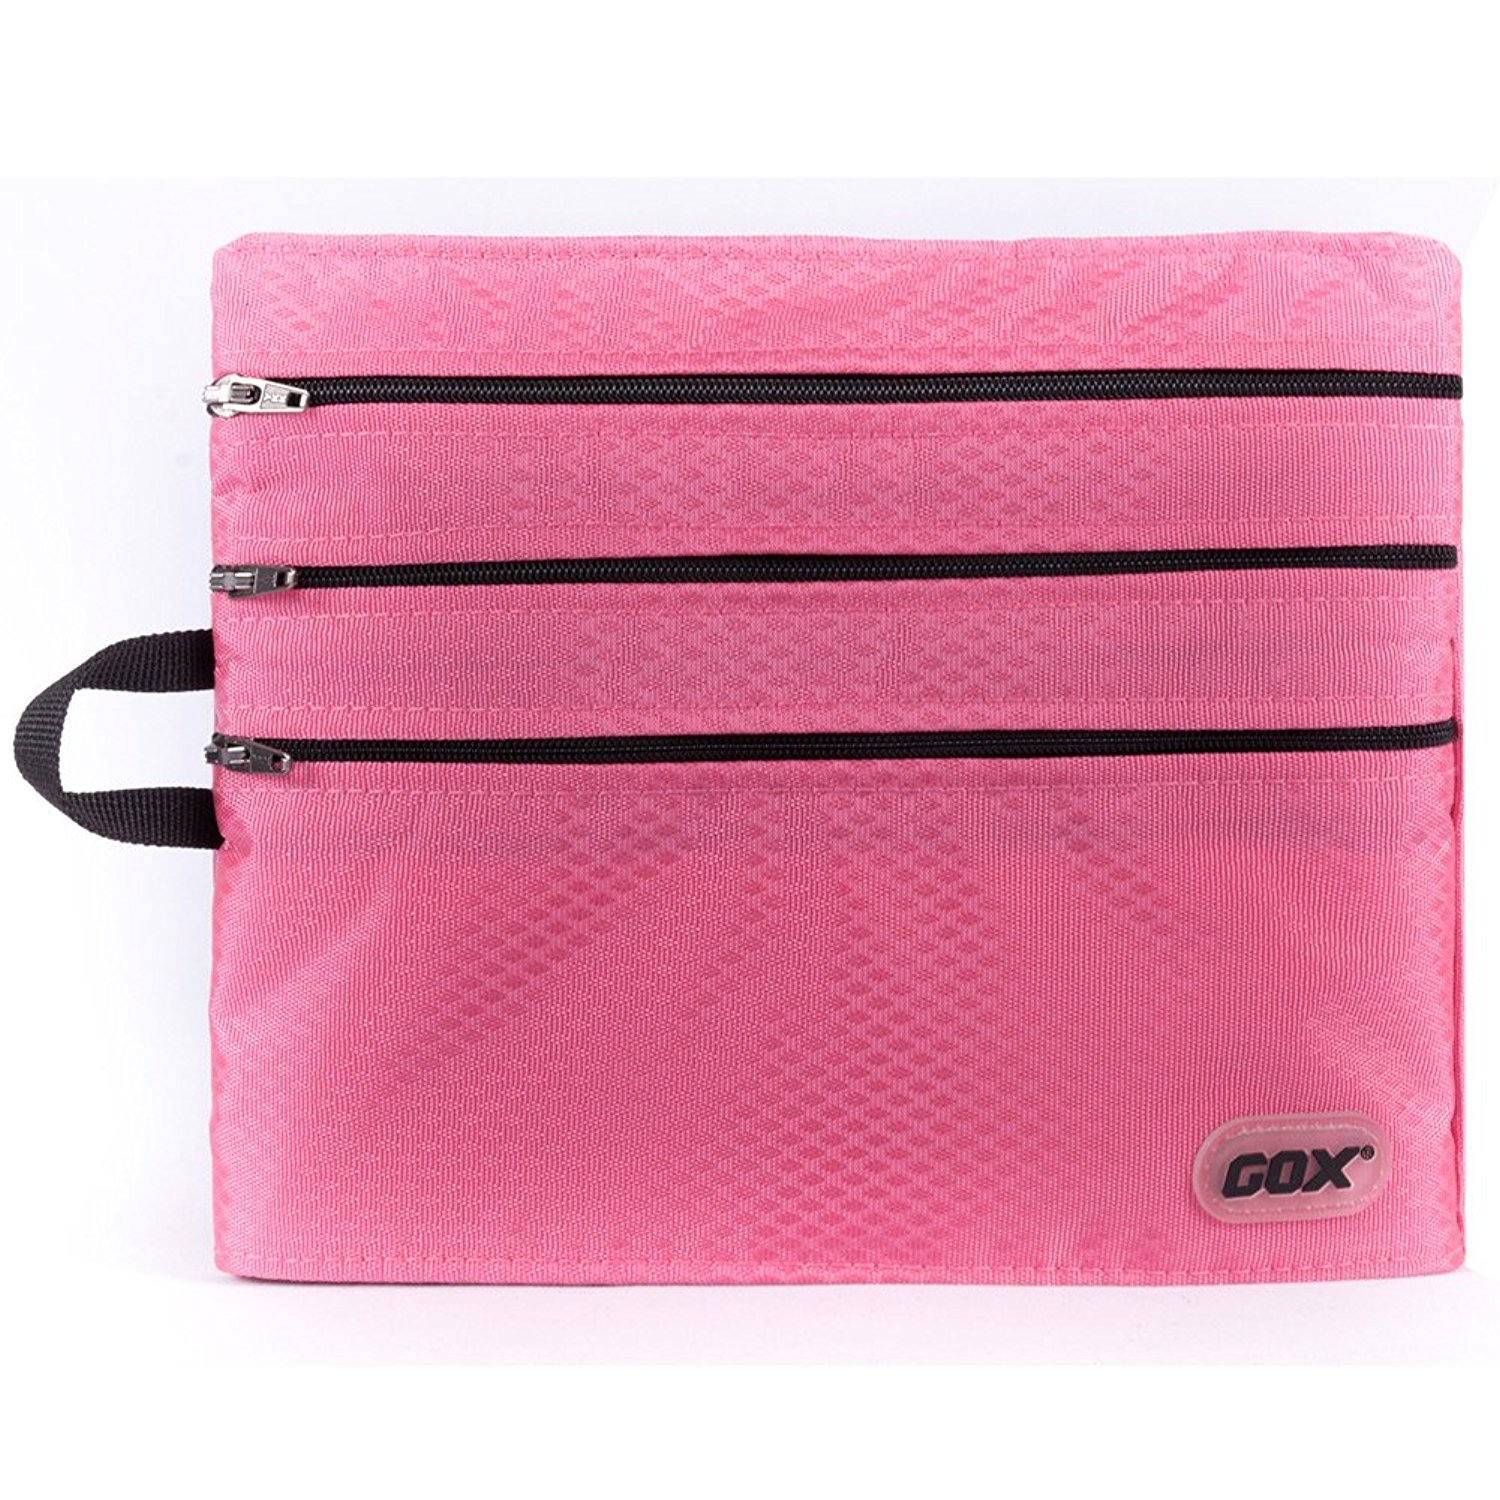 Travel Wallet Passport Holder Travel Document Orgnazier Pouch with 4 Zipper pockets for Women/Men/Family/Traveling, Pink